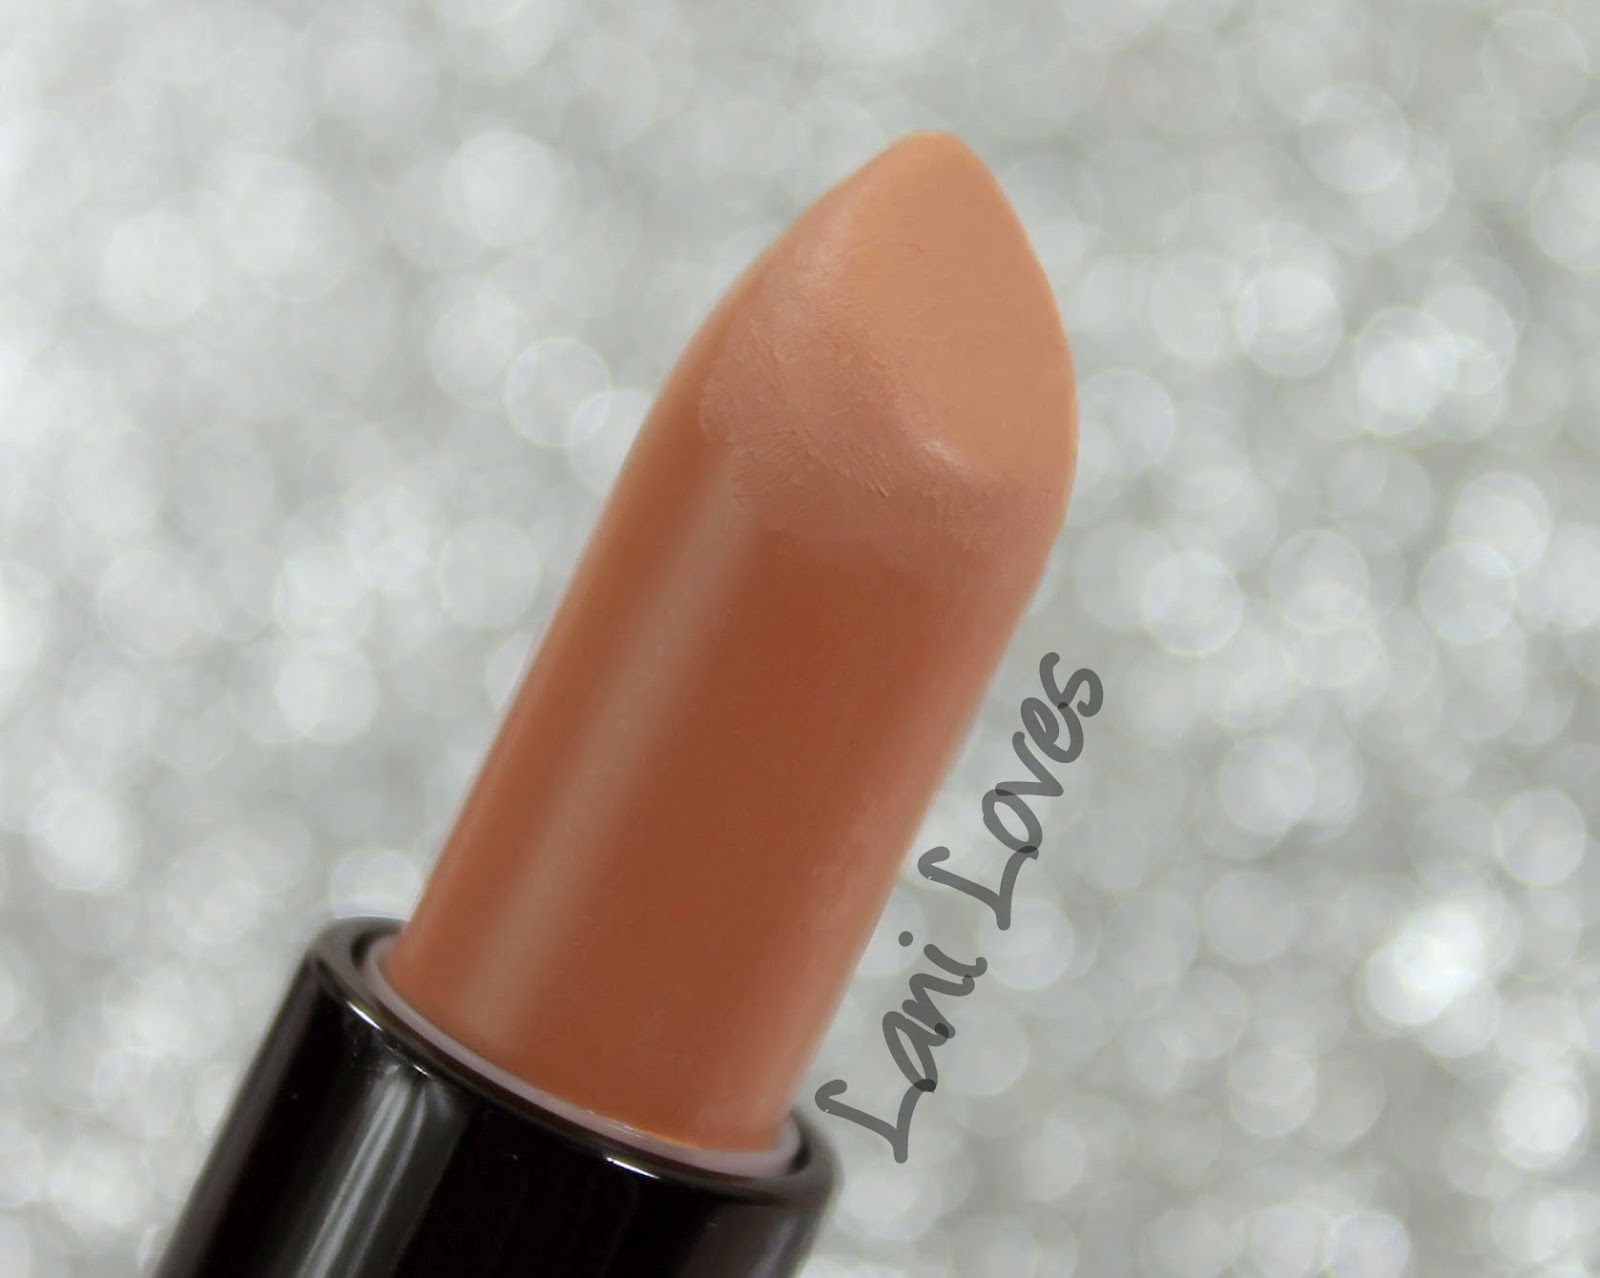 MAC Monday: MAC X Kelly Osborne - Strip Poker Lipstick Swatches & Review